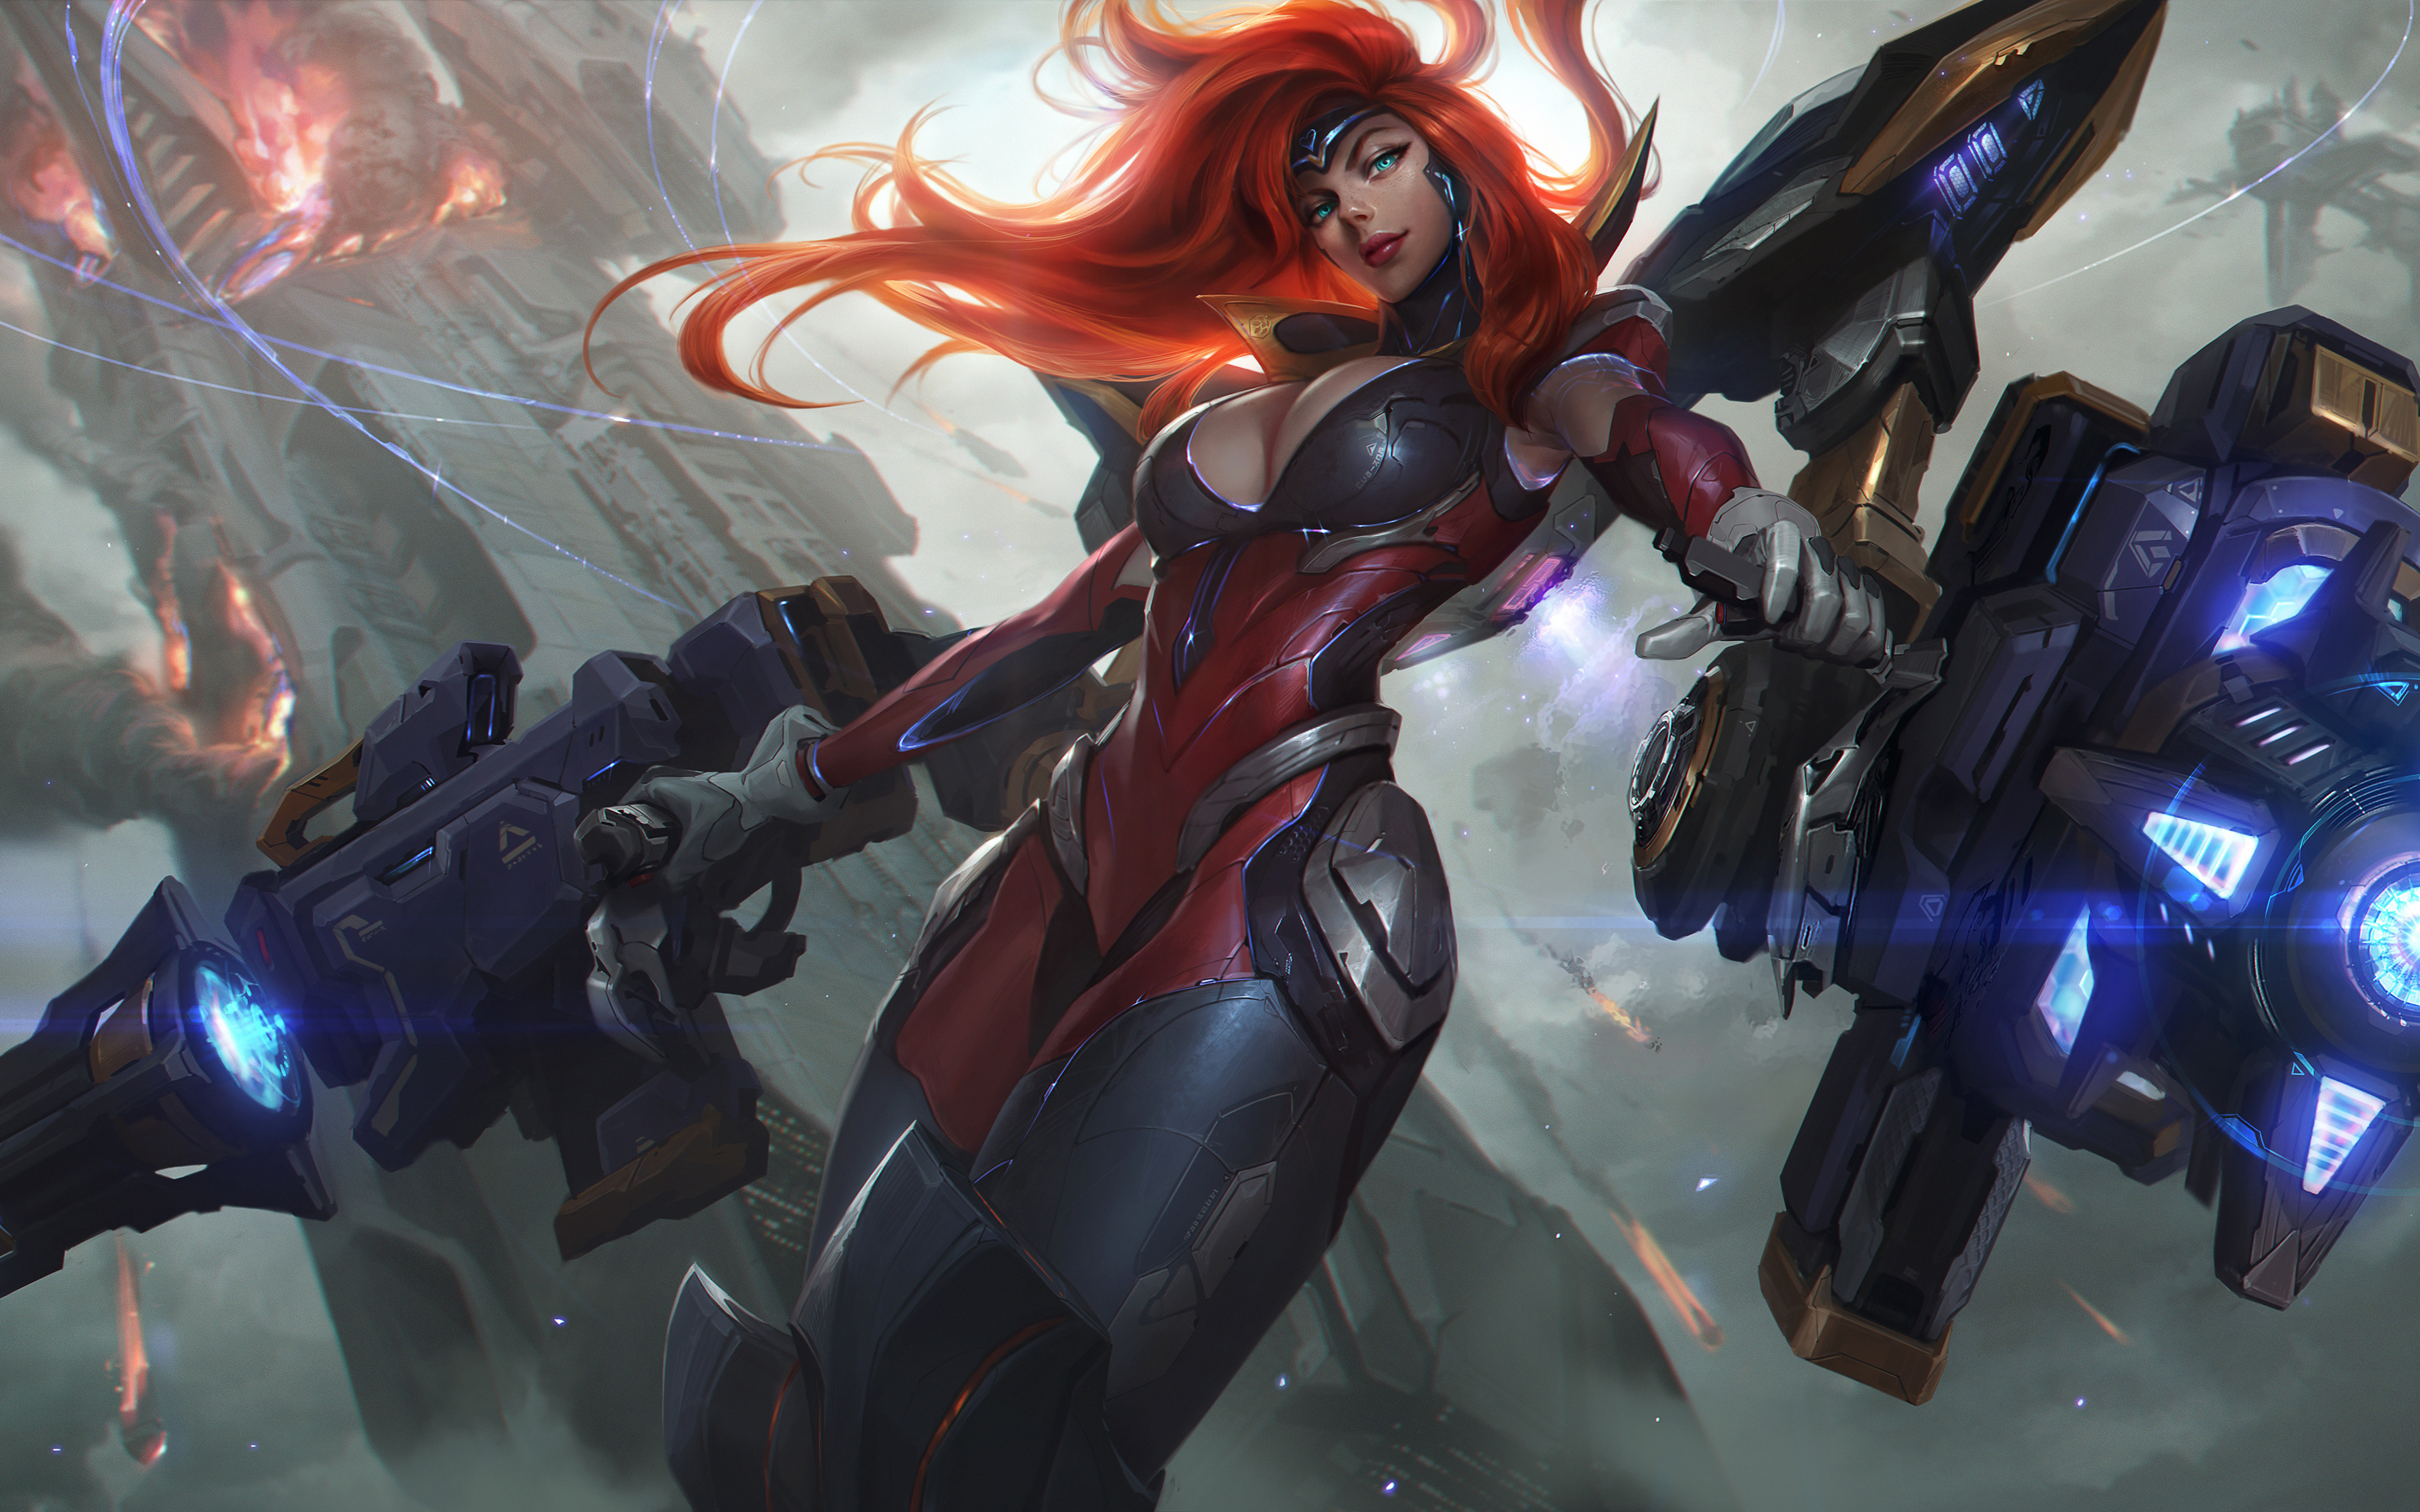 Gun Goddess Miss Fortune League of Legends 5K511509921 - Gun Goddess Miss Fortune League of Legends 5K - Symmetra, Miss, Legends, League, Gun, Goddess, Fortune